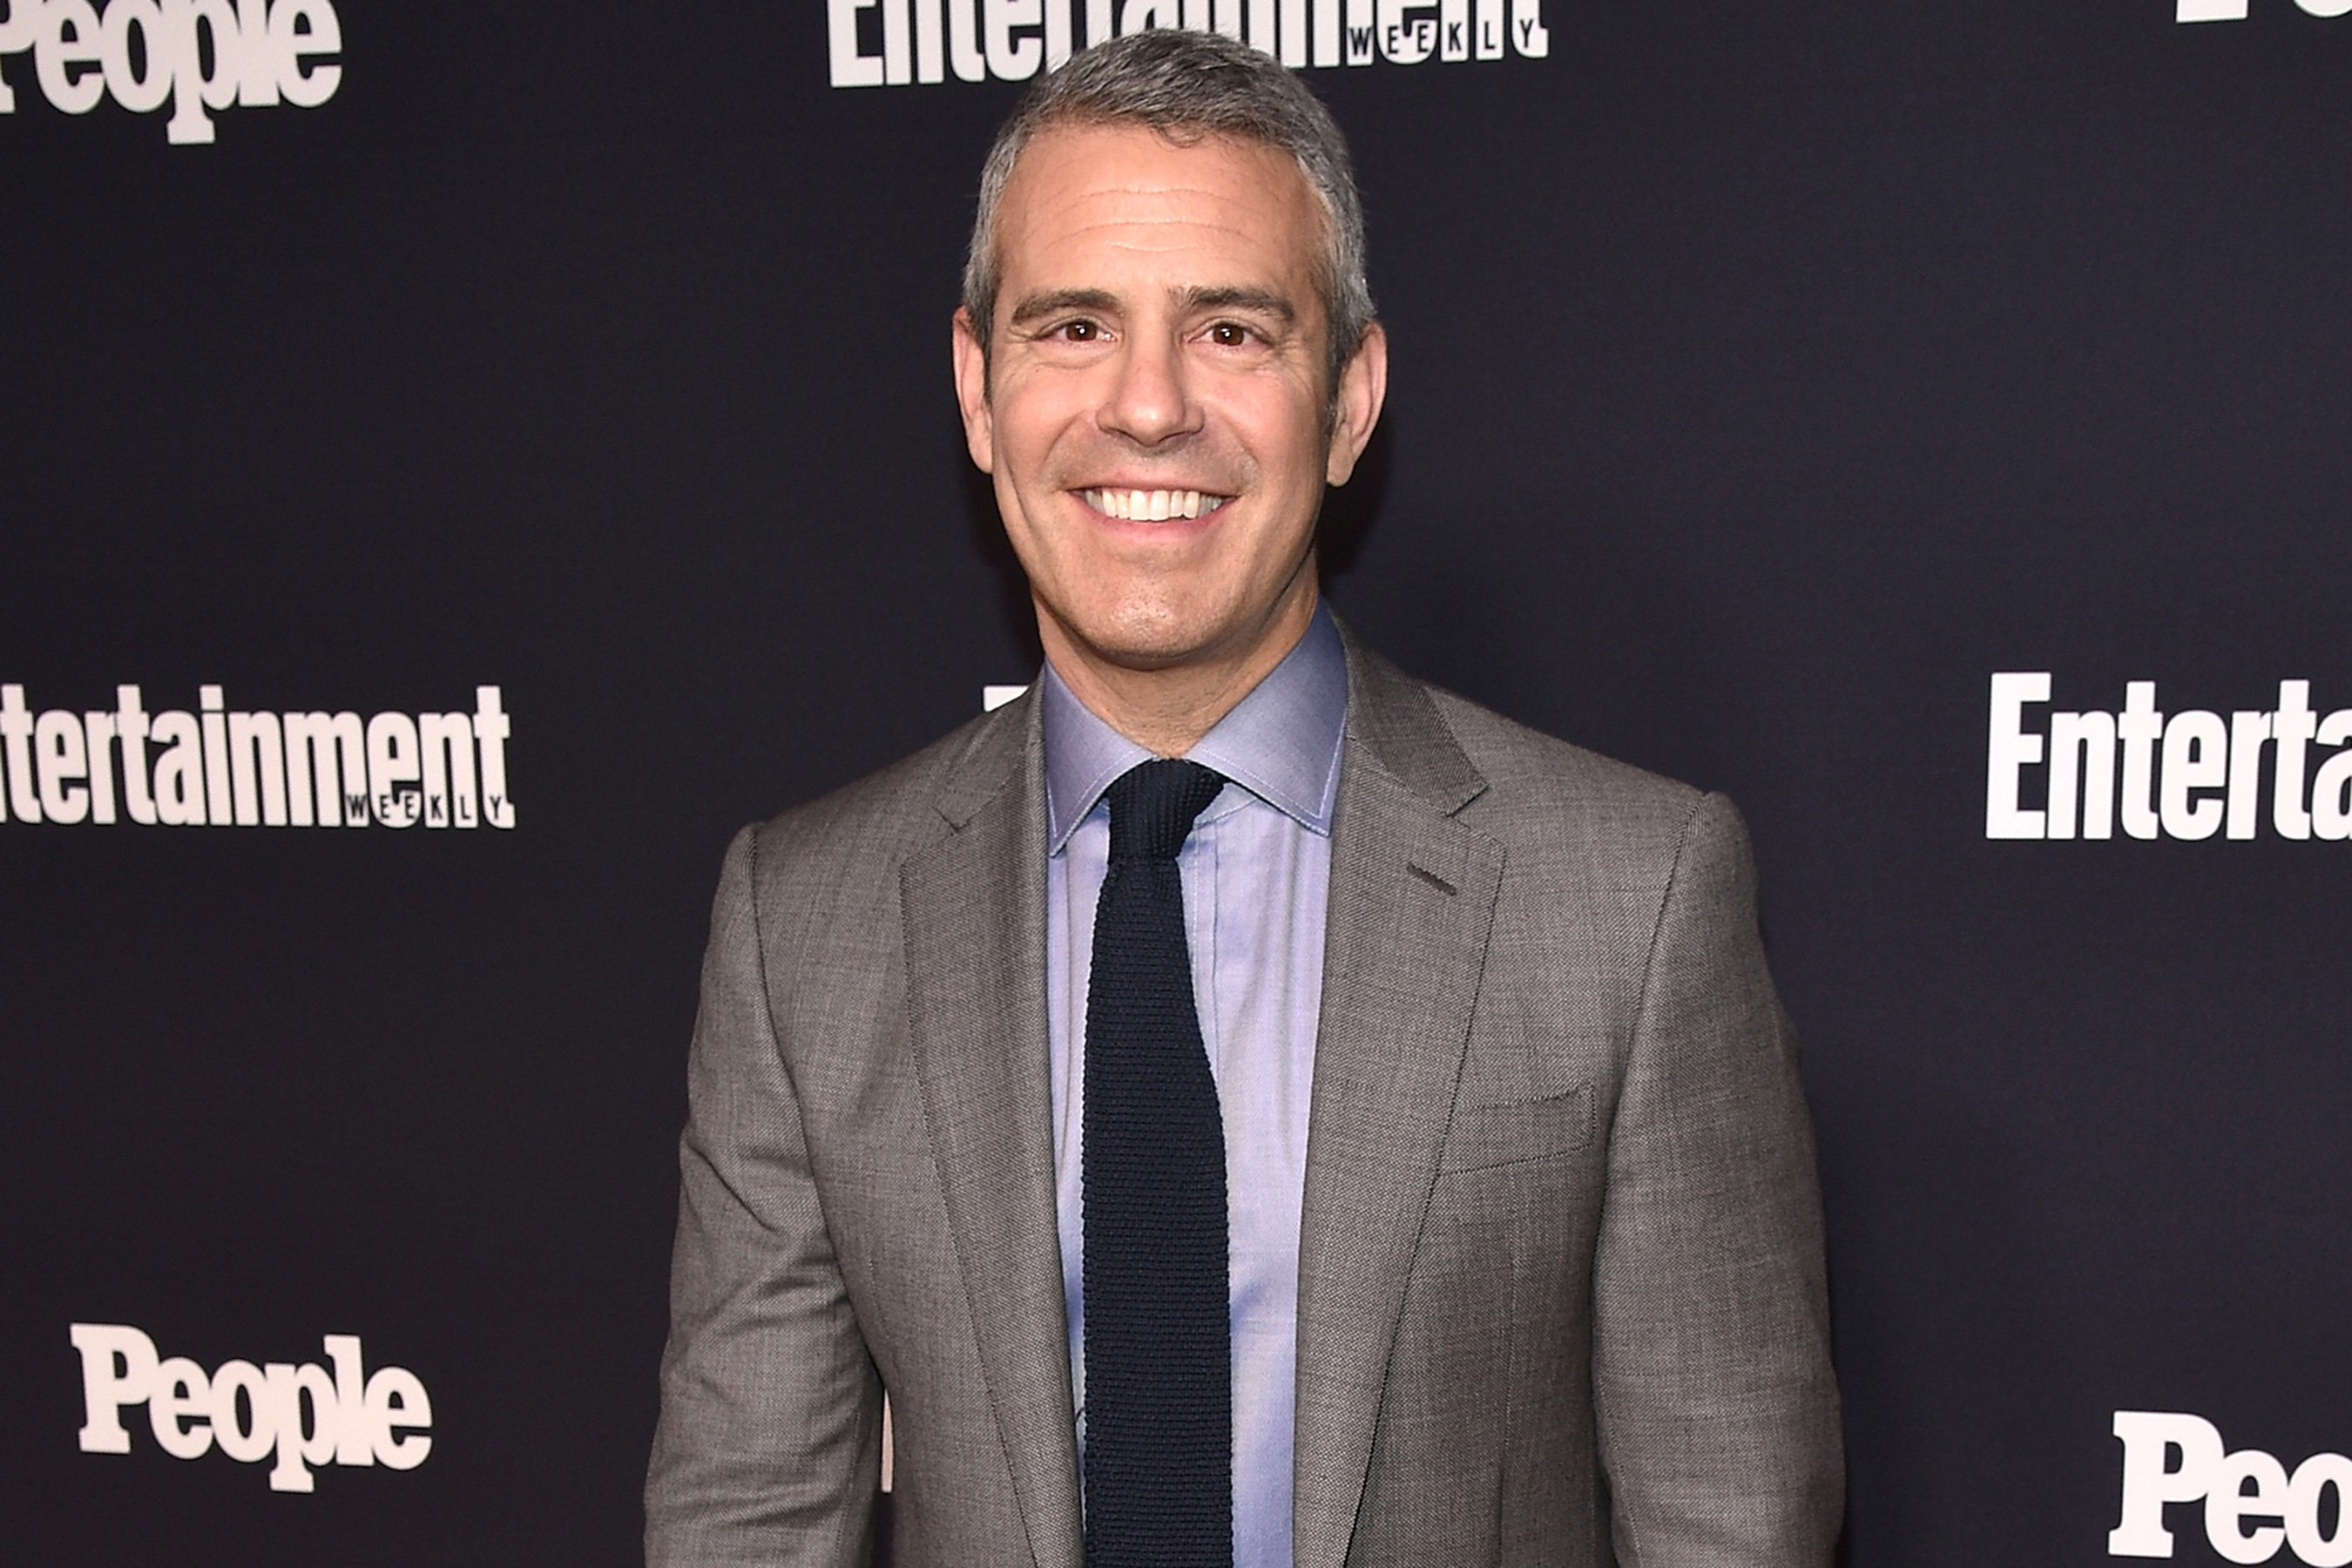 Watch Andy Cohen crash a live TV news broadcast